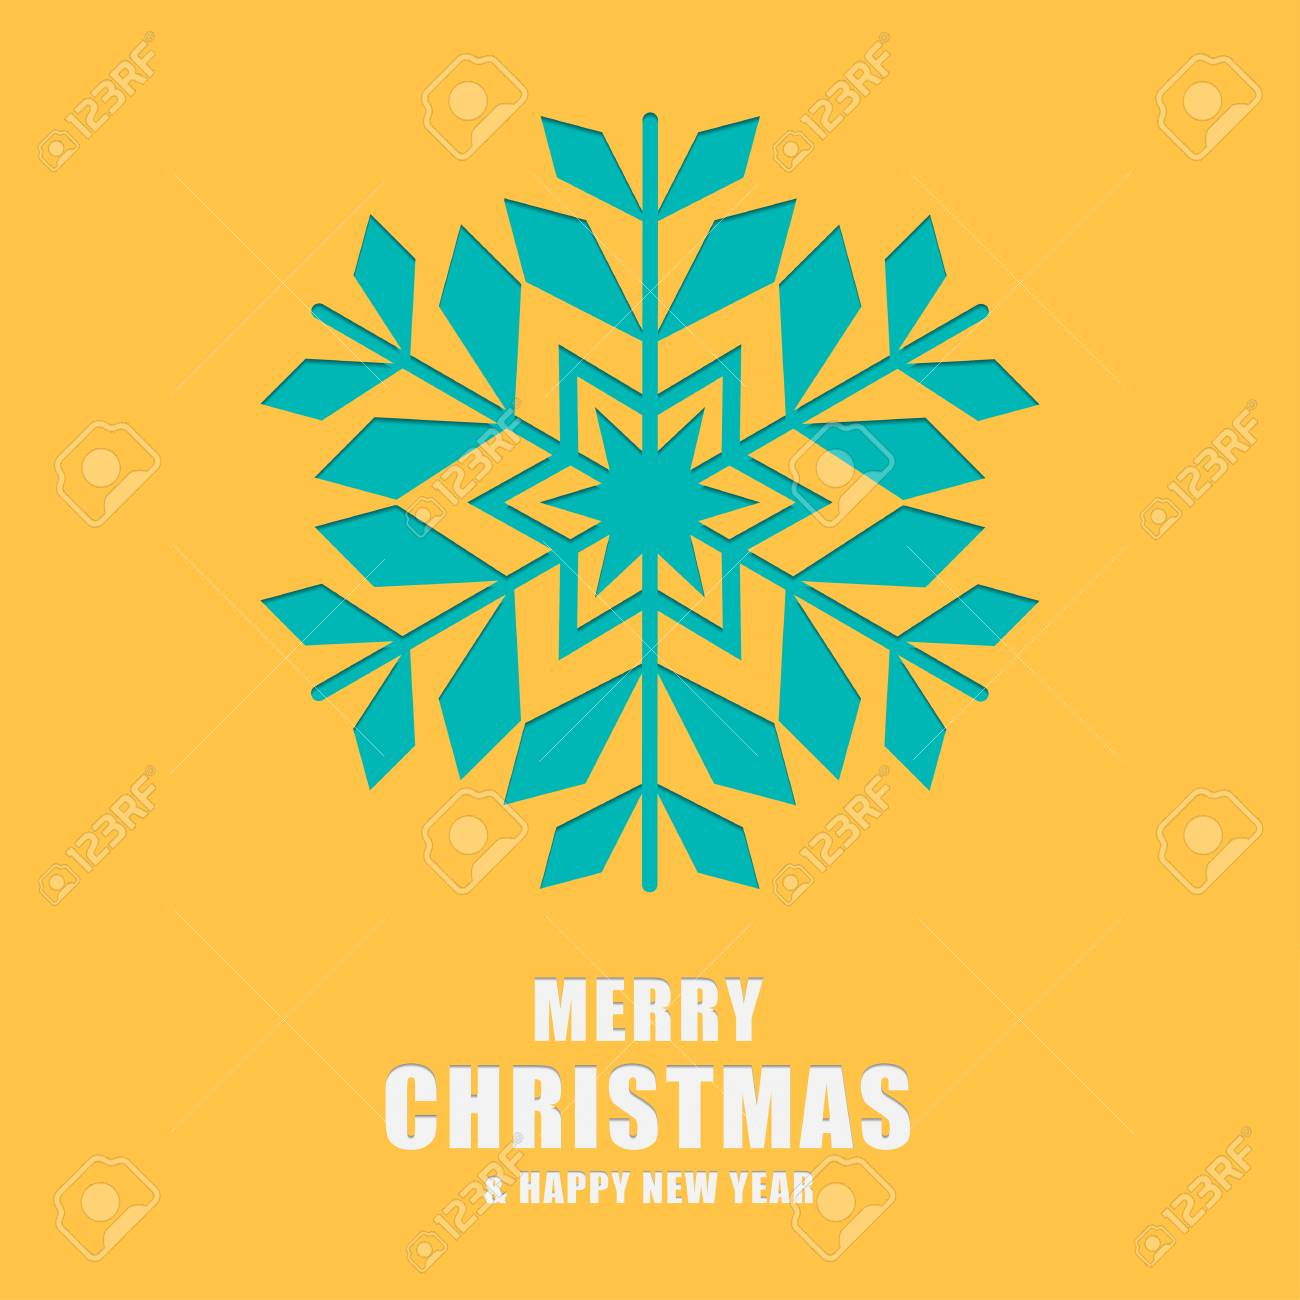 christmas and new year greeting card template snowflakes laser cut and engraved stencil for